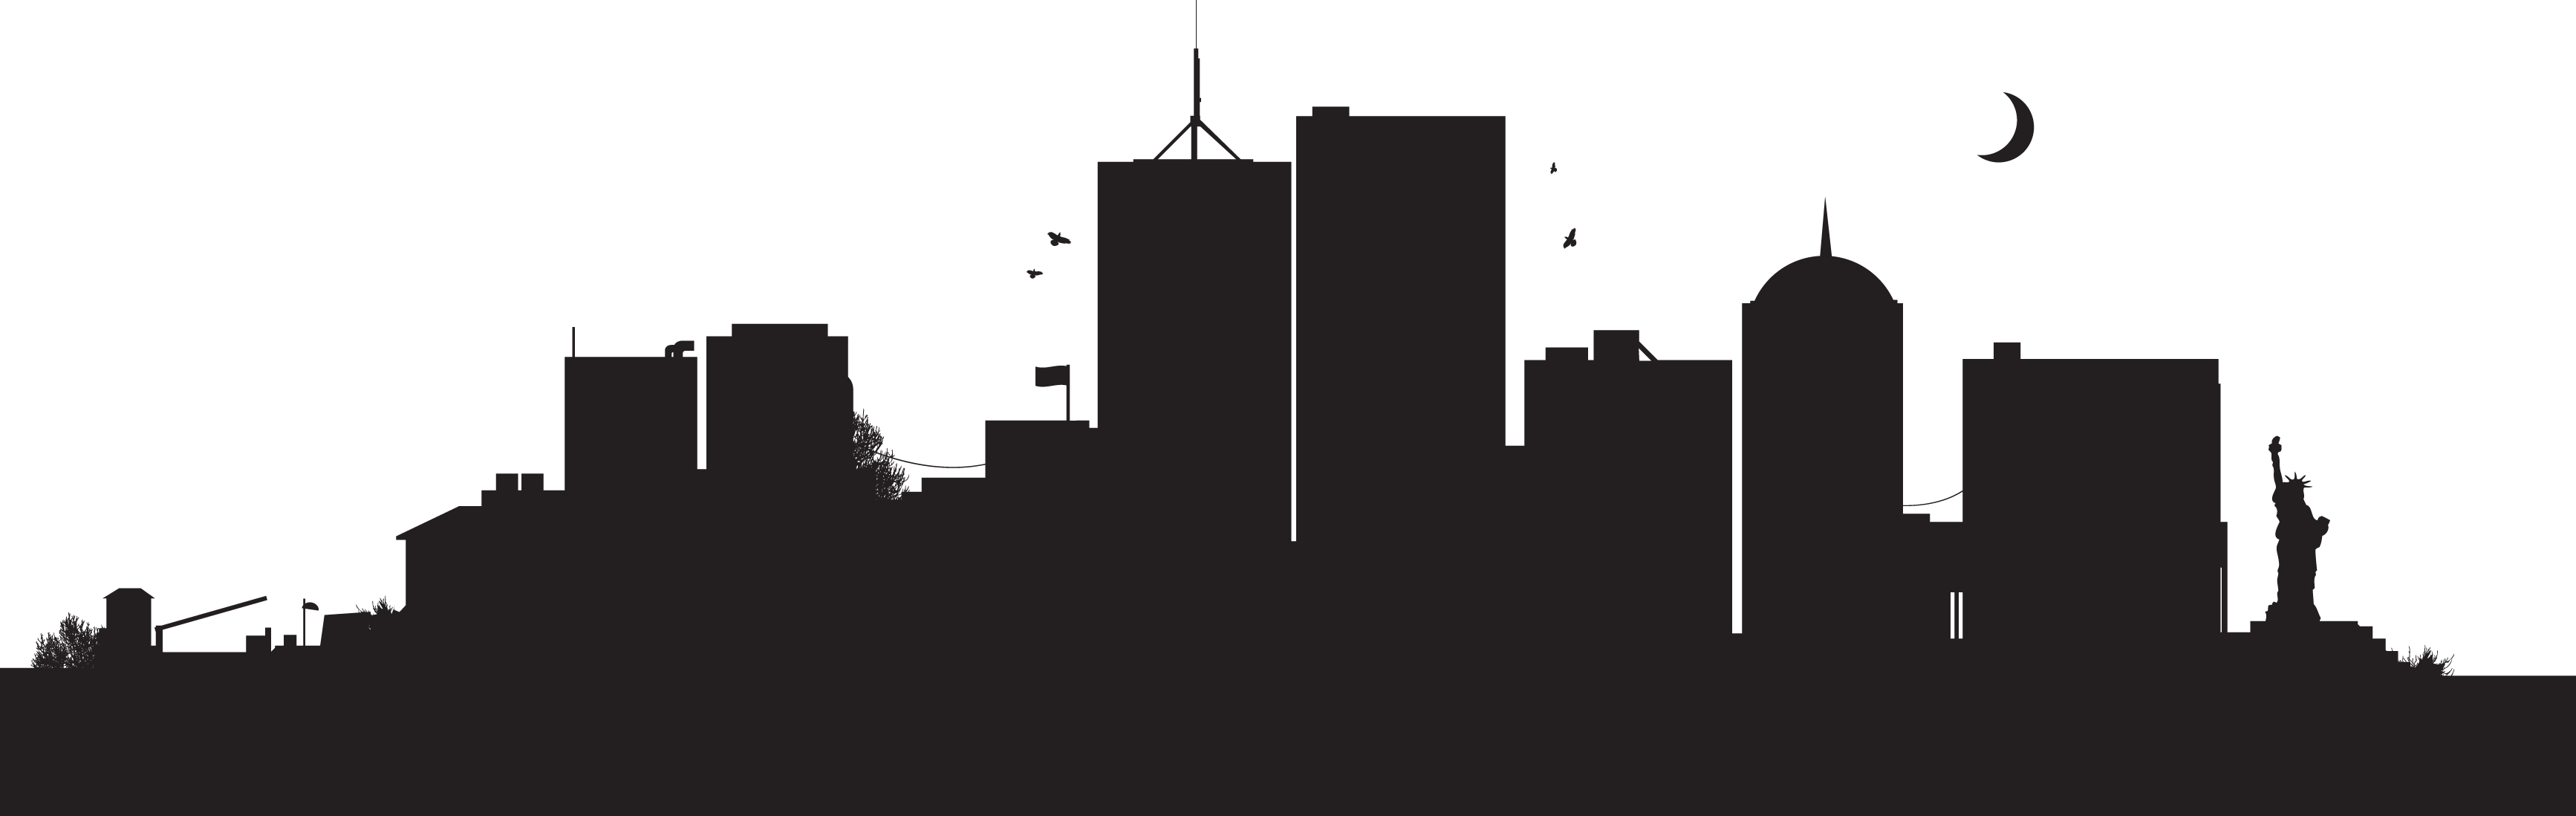 3468x1098 Building Vector Png 1 Png Image